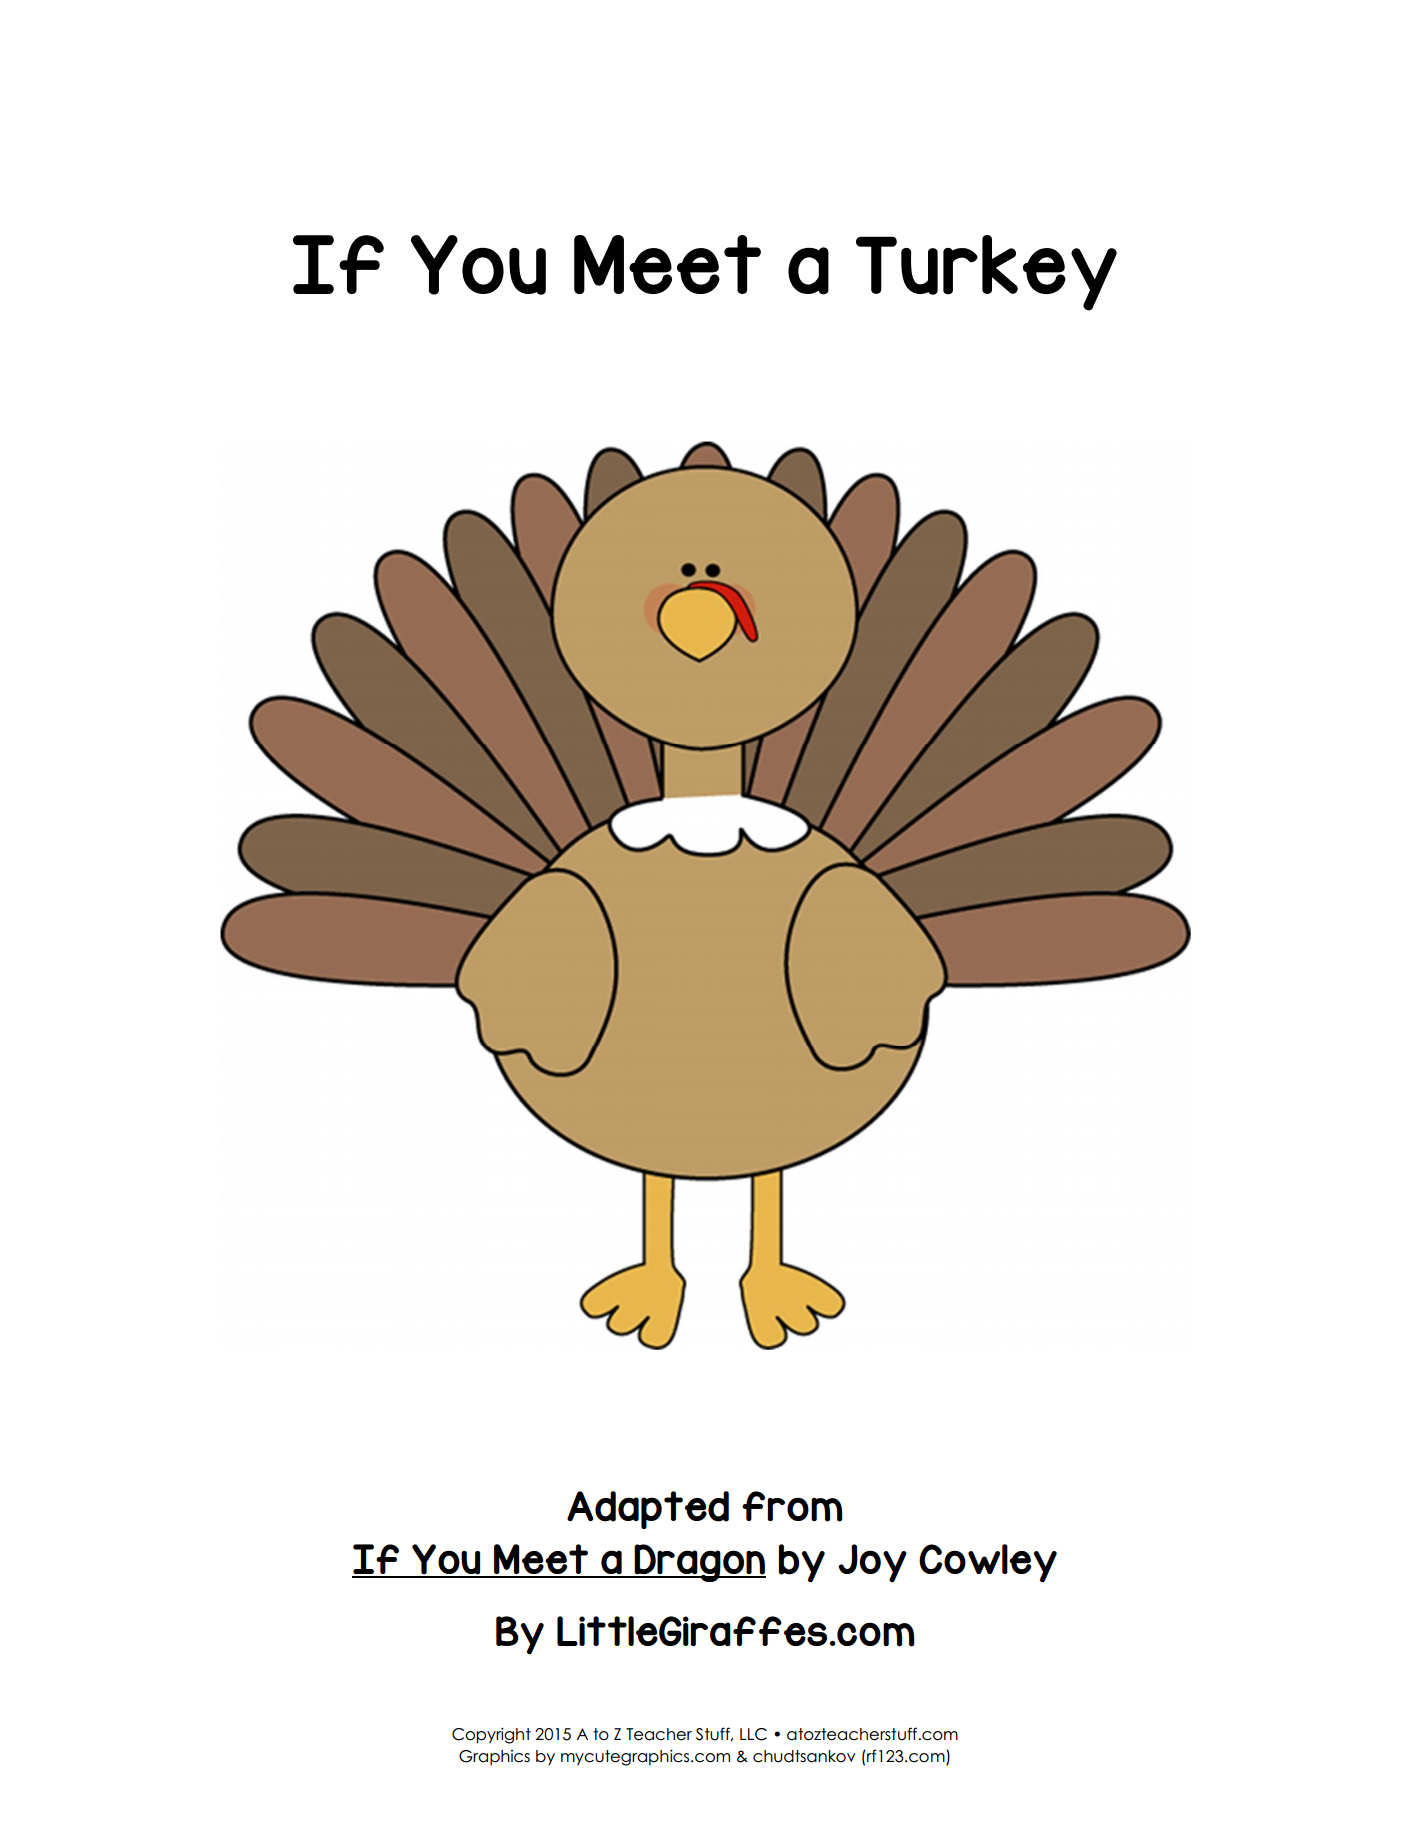 If You Meet A Turkey Printable Book | A To Z Teacher Stuff Printable - Thanksgiving Printable Books Free